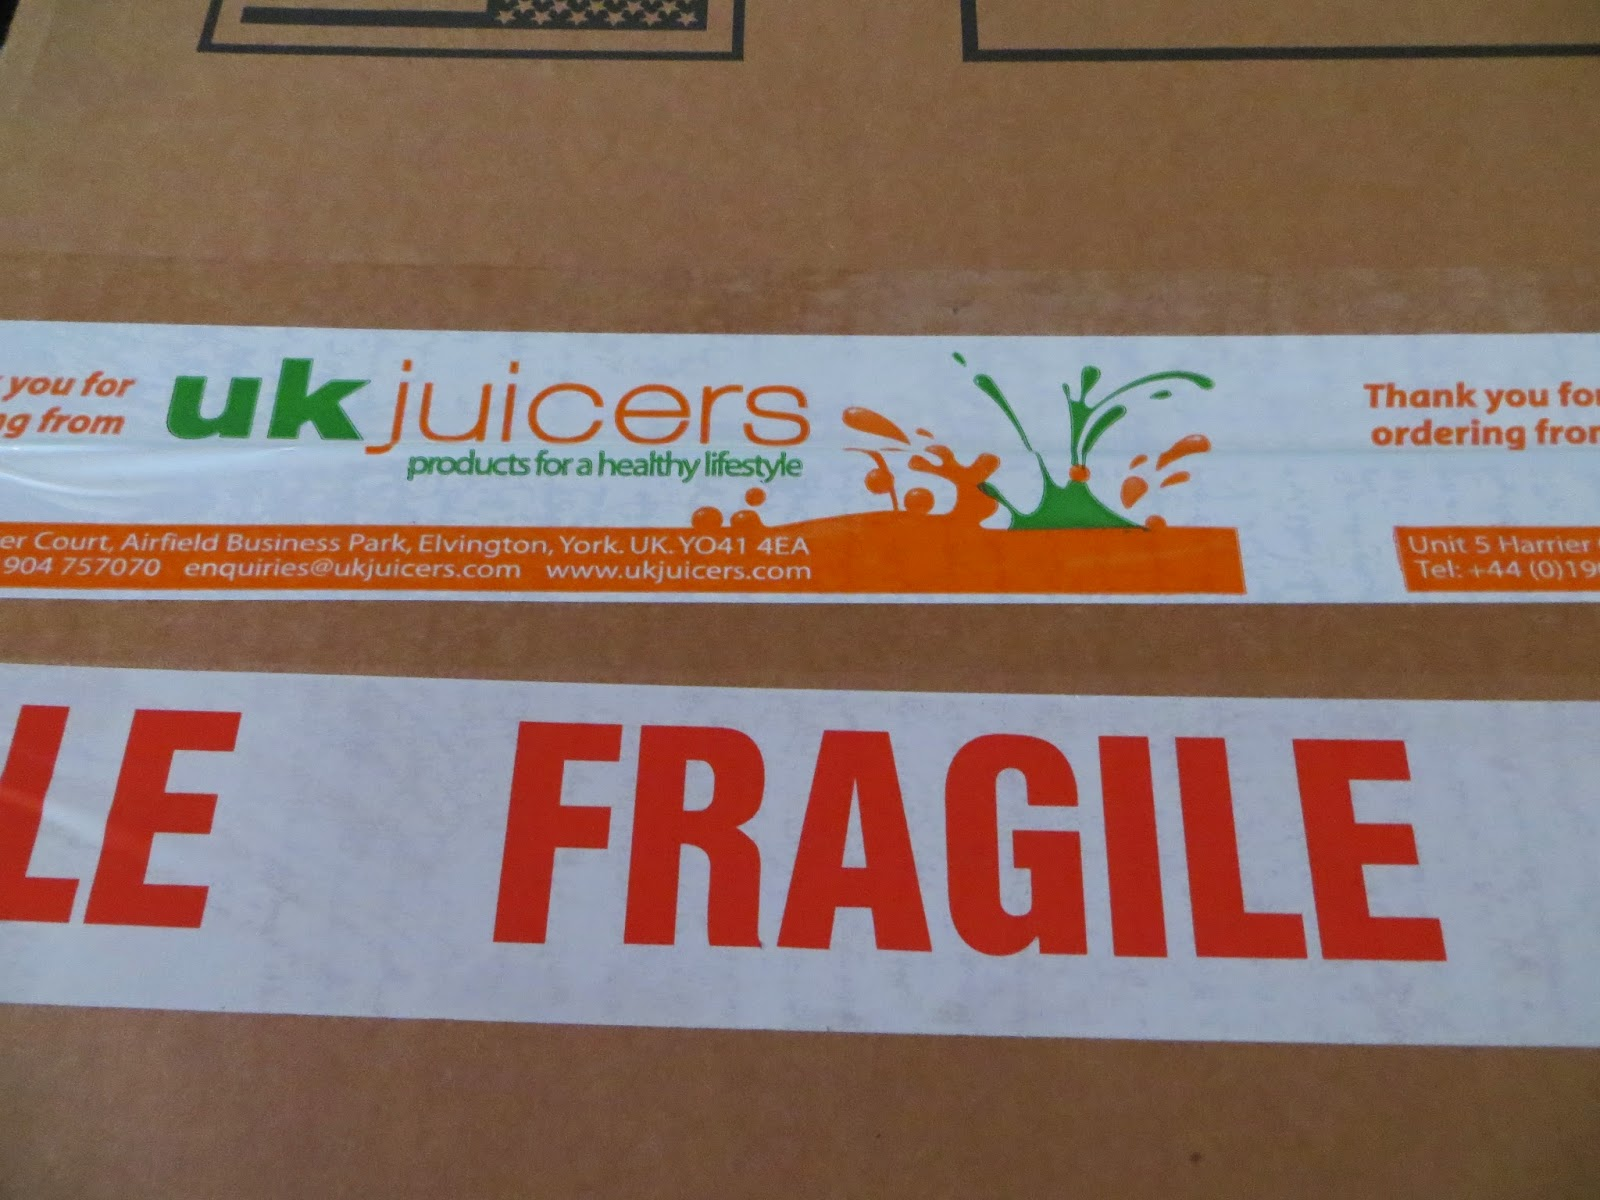 UK Juicers